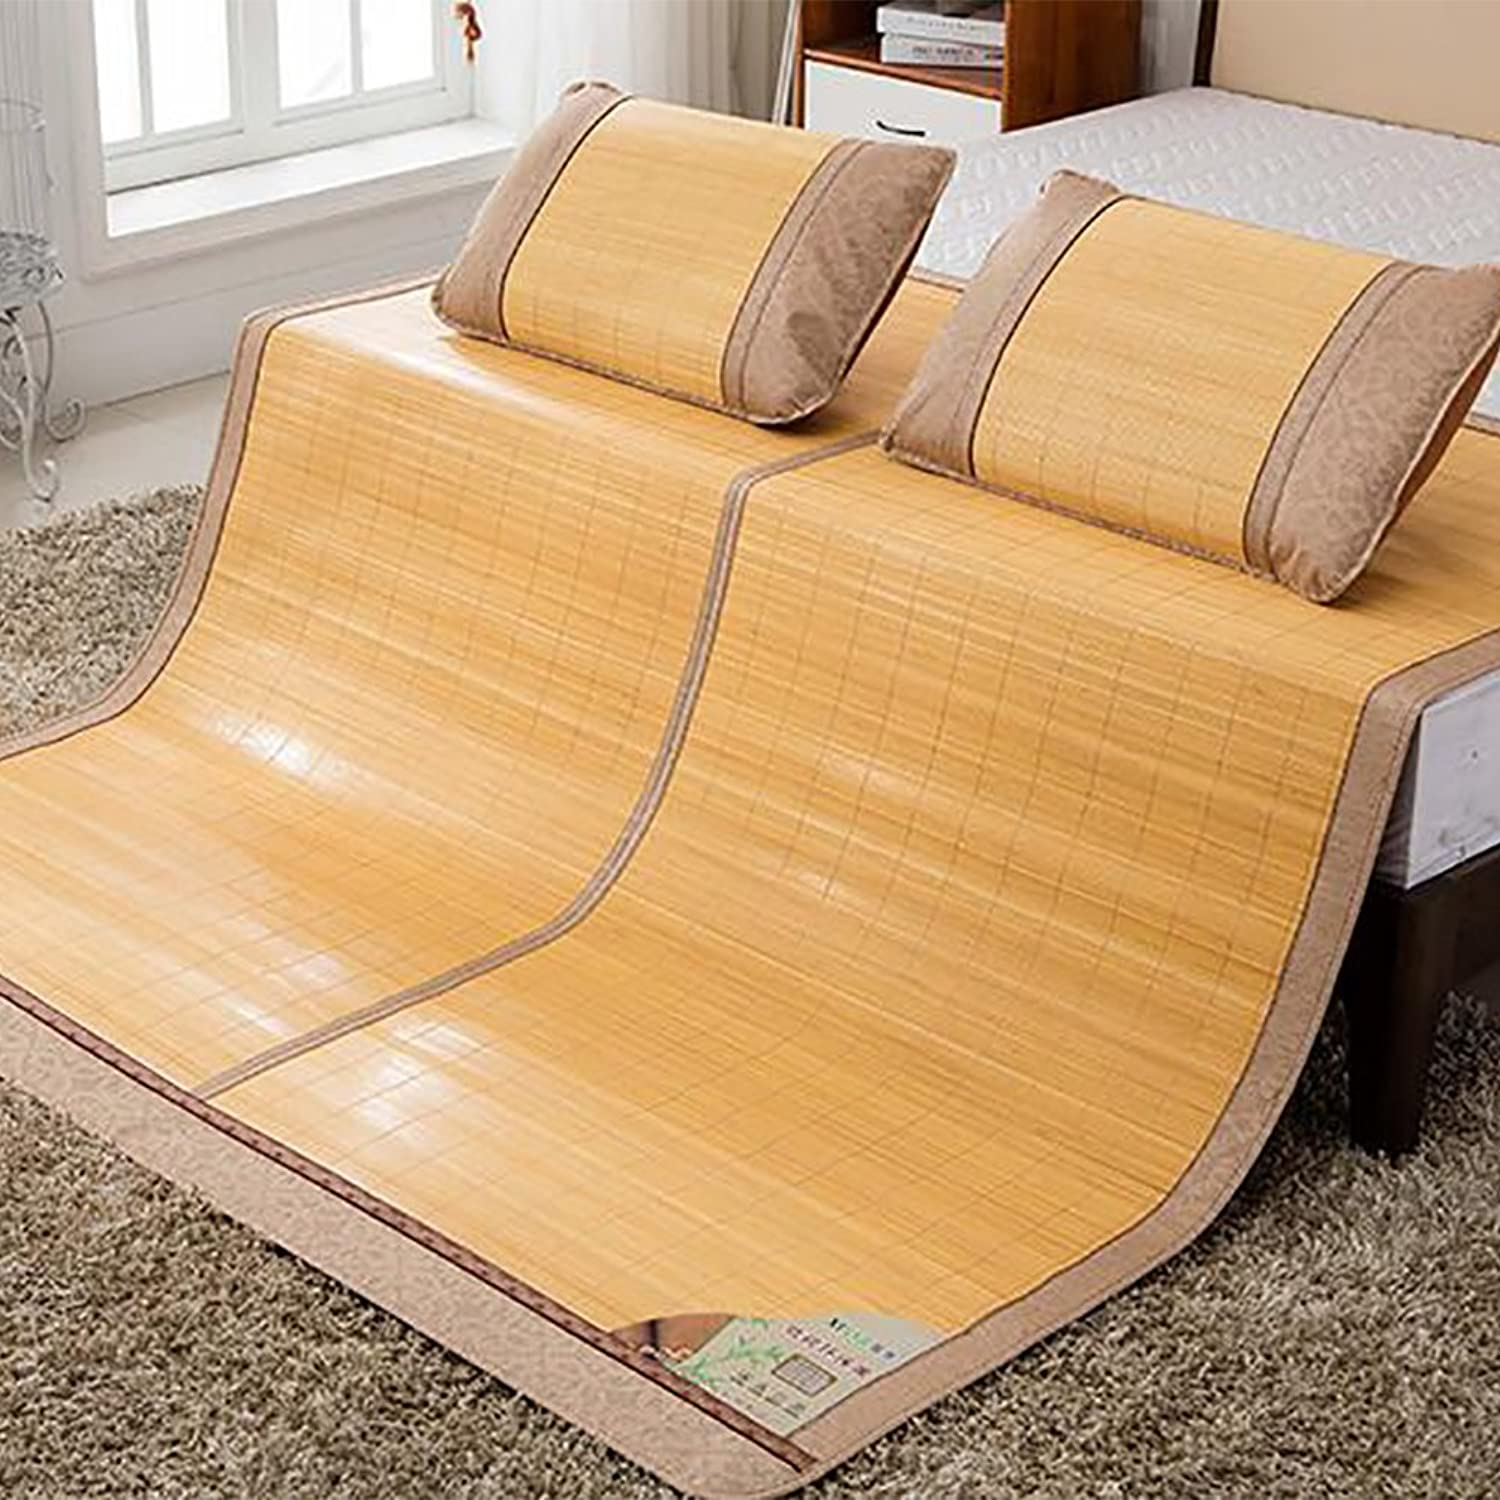 Old Bamboo mat,Skin-Friendly Breathable Single Double Summer mat Double-Sided ice Silk mat -B 120x195cm(47x77inch)